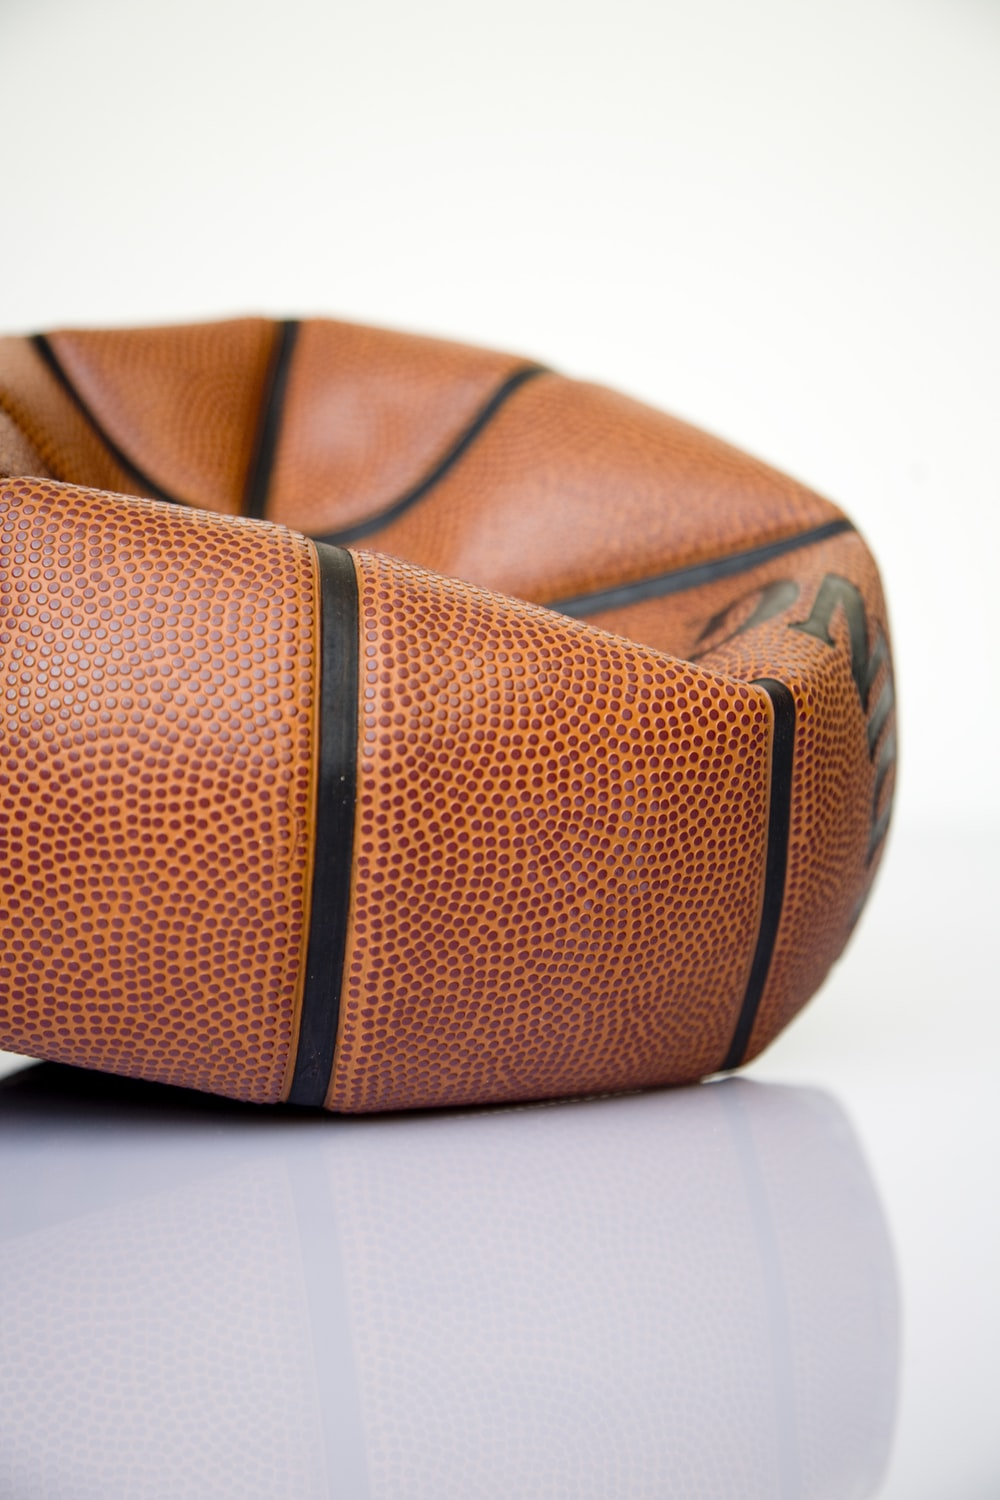 brown basketball ball on white surface